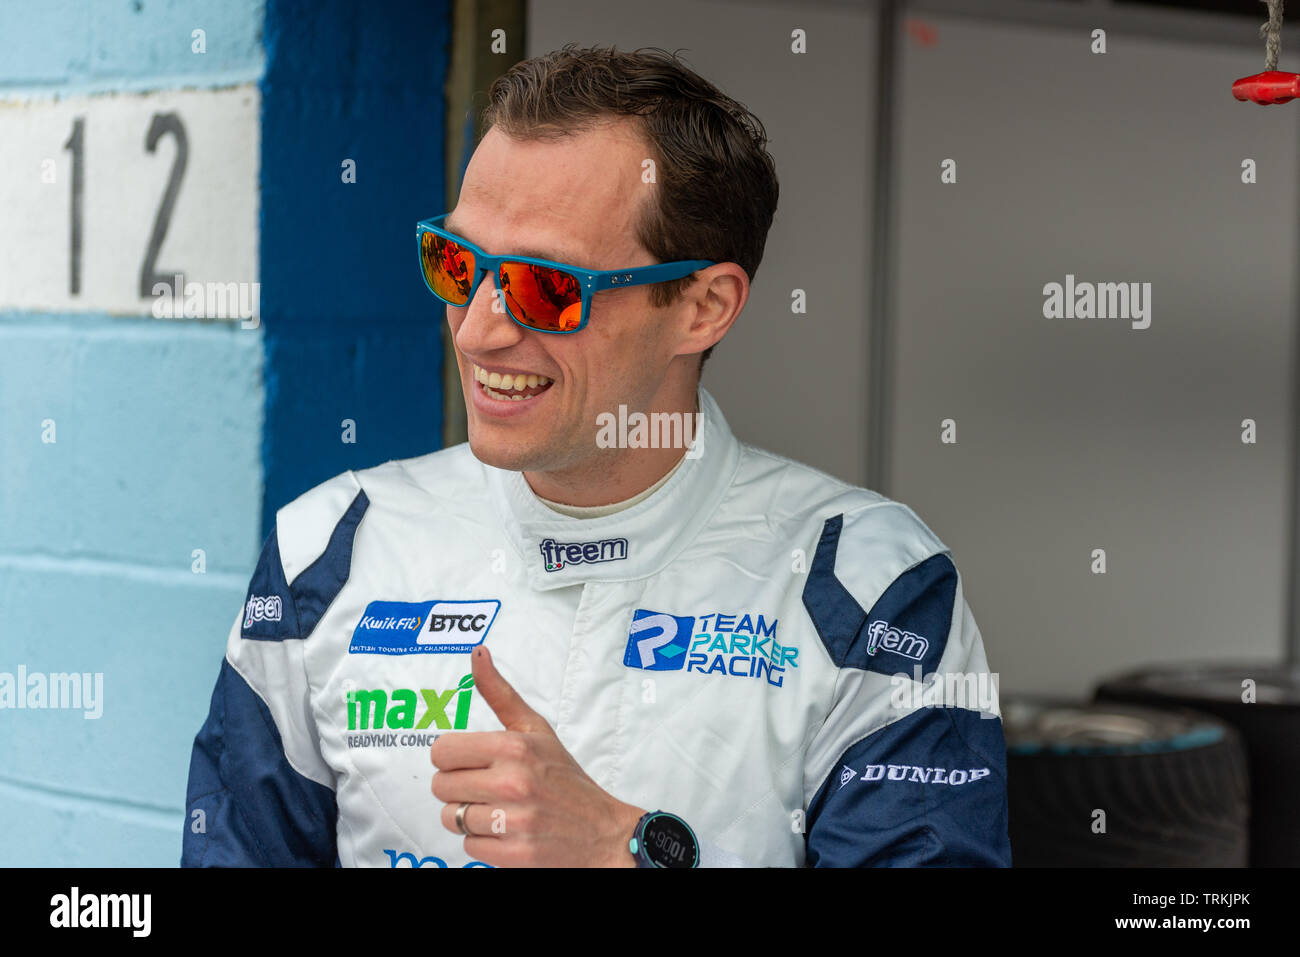 Stephen Jelly BTCC Racing Driver at Thruxton During the Kwikfit British Touring Car Championship Weekend of May 18th and 19th 2019 - Stock Image